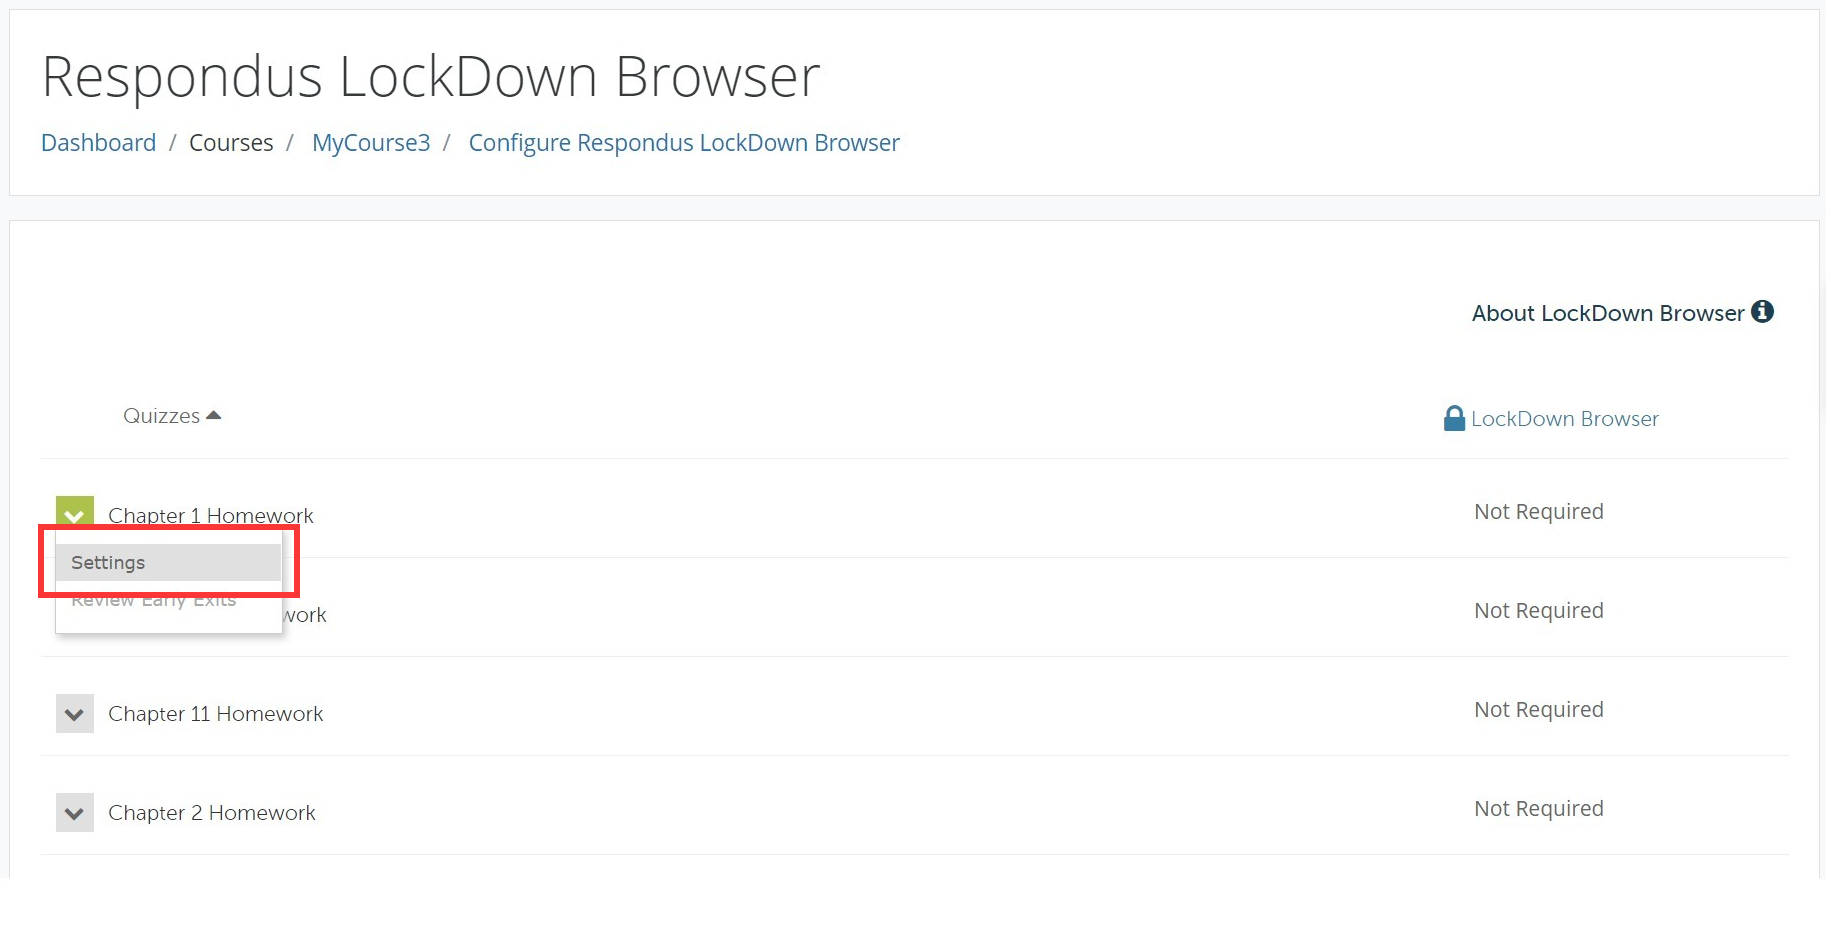 LockDown Browser course options.